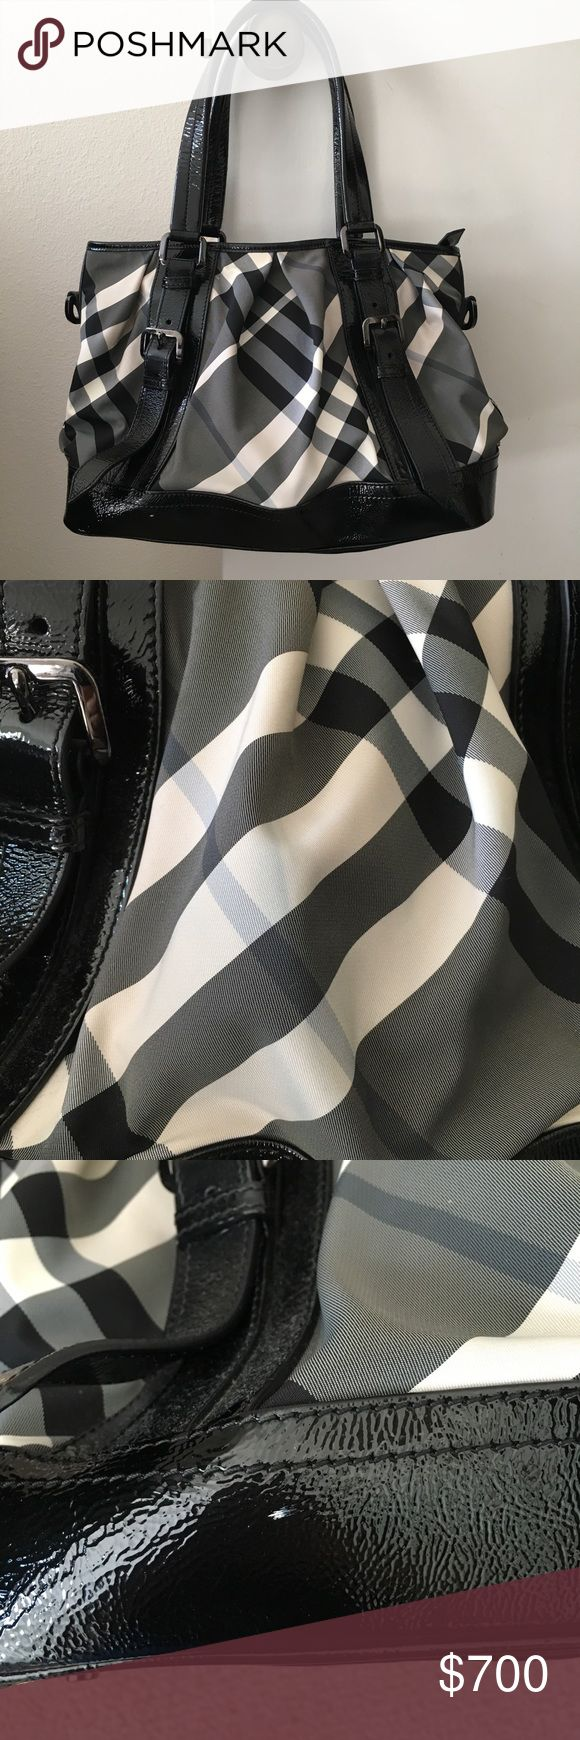 "Burberry Beat Check Lowery medium bag This is a 100% authentic Burberry Lowery bag in beat check. There are a few marks on the bag but they're not too noticeable. The first one is a small white dot on the black leather on the bottom of the bag. The second looks like a bit of denim transfer on one side of the bag, but it's pretty light. There are a few scuff marks on the long strap Too. Comes with dust bag.  Handle Drop 8"", Height 10"", Width 15"", Depth 7"" Burberry Bags"